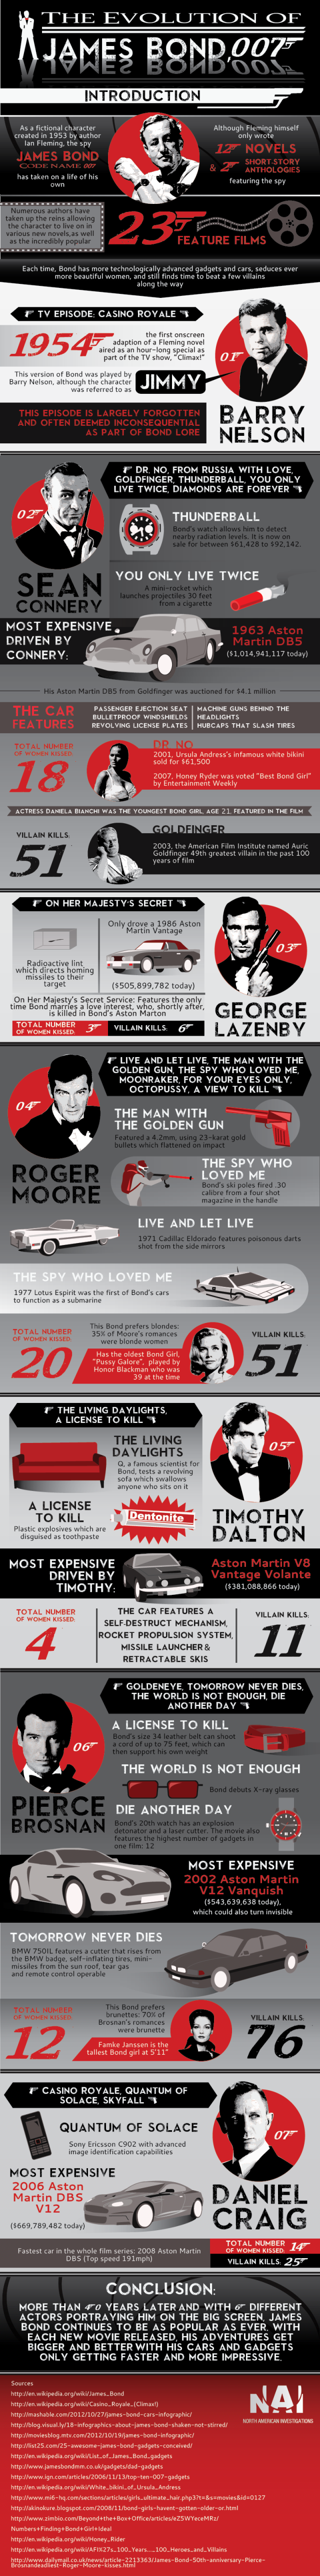 La evolución de James Bond